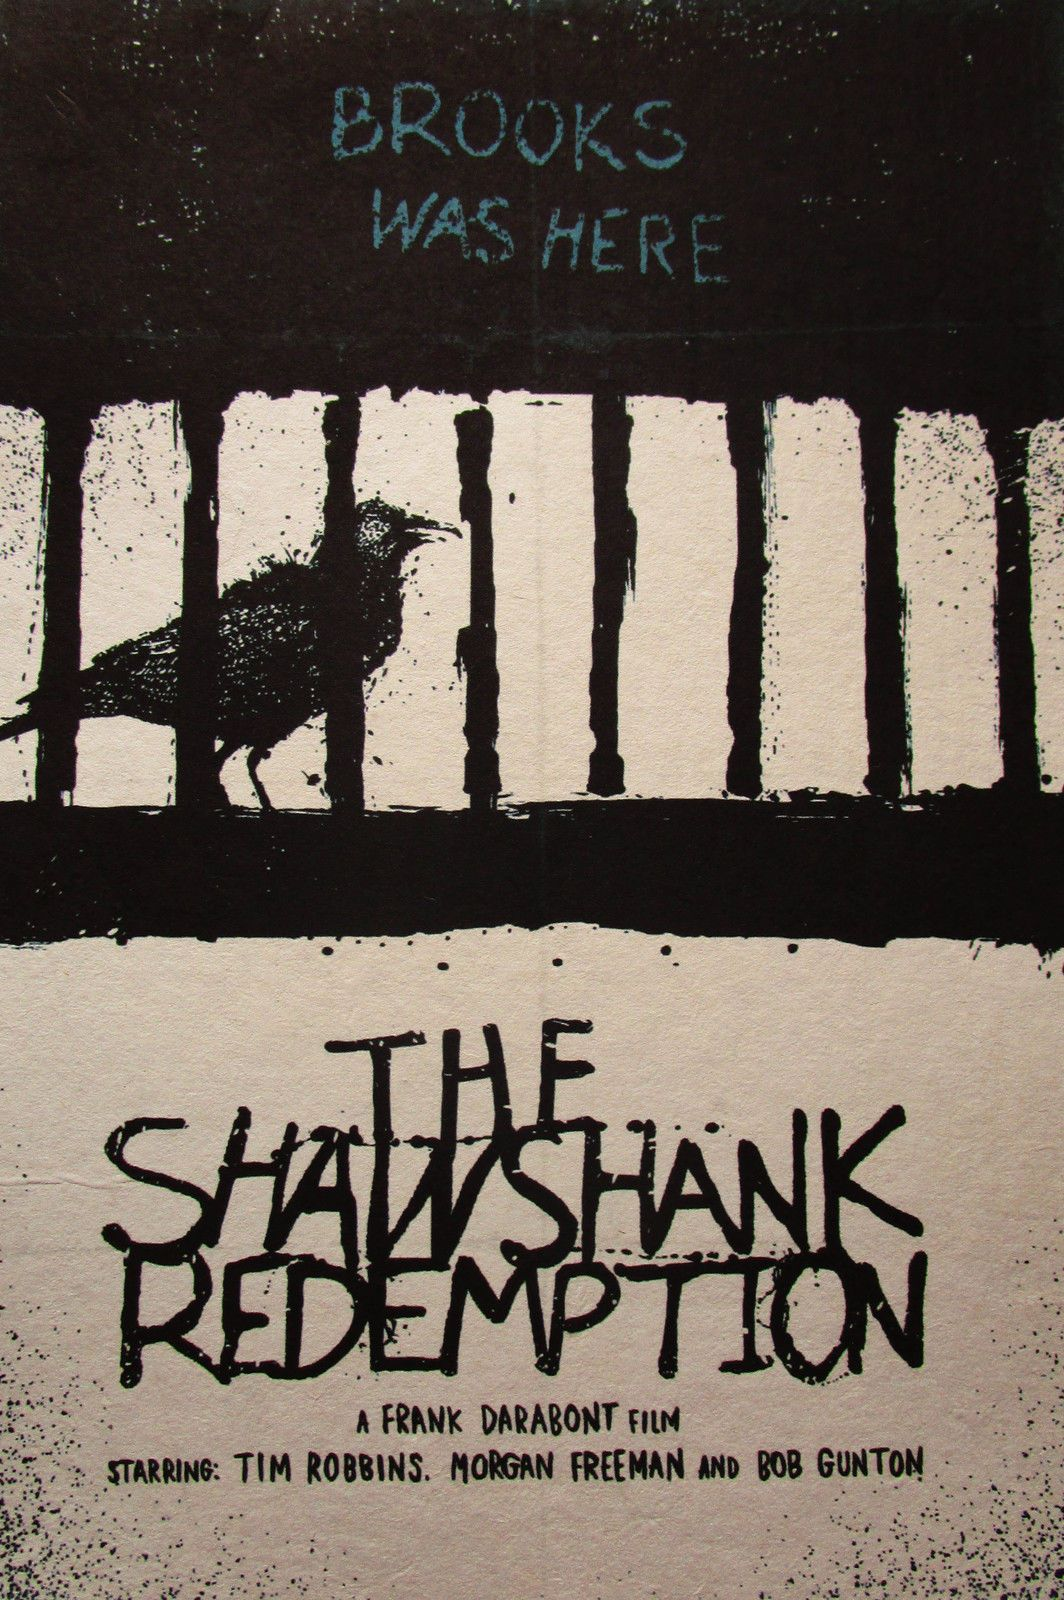 The Shawshank Redemption Classic Movie Large Poster Art Print Gift A0 A1 A2 A3